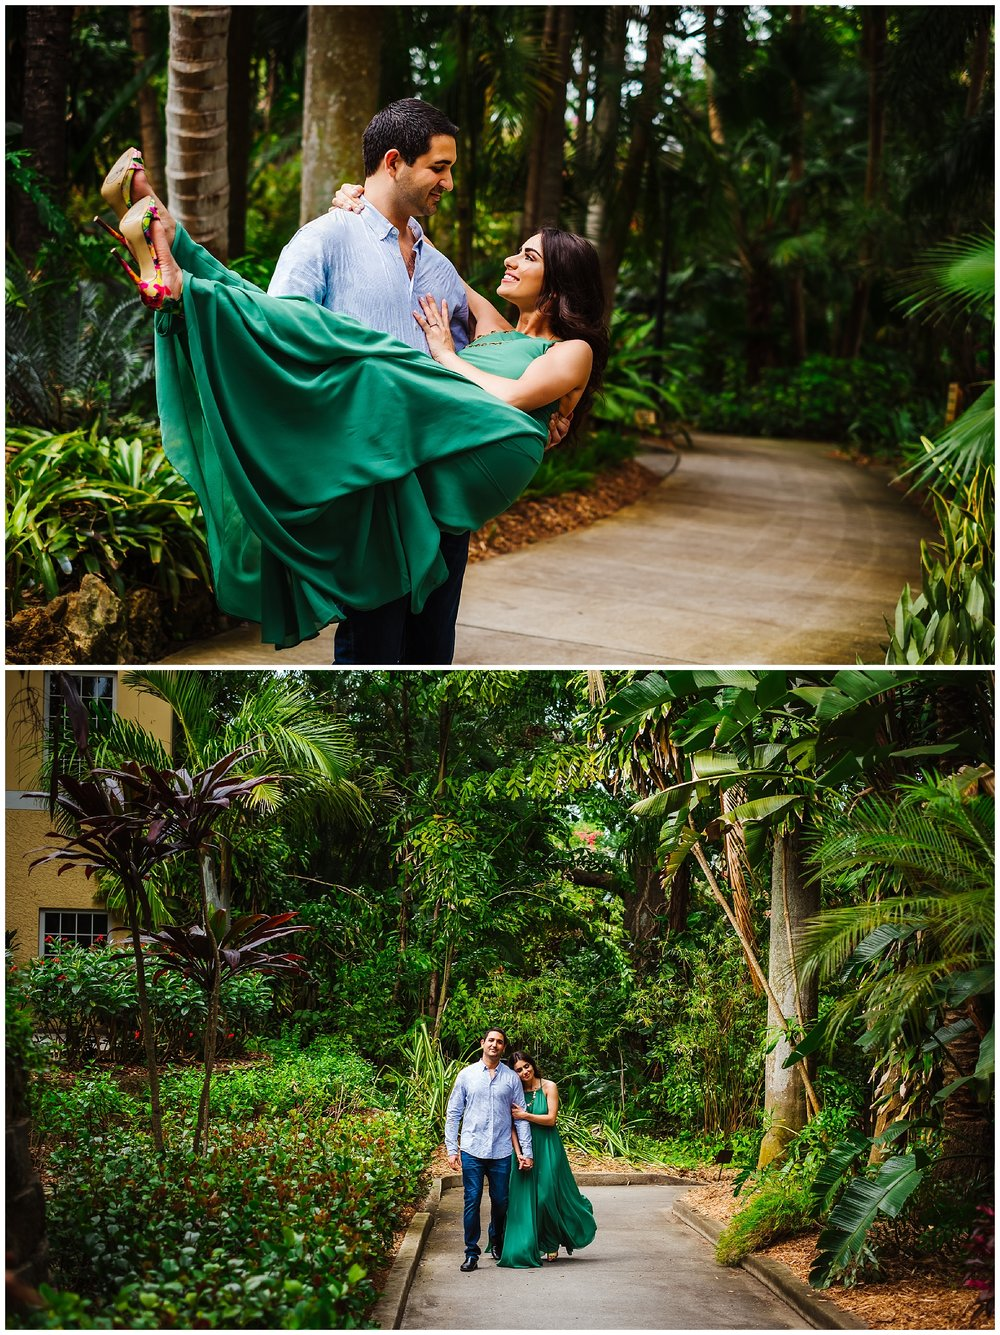 sunken-gardens-engagement-session-photos-teal-flamingos_0019.jpg